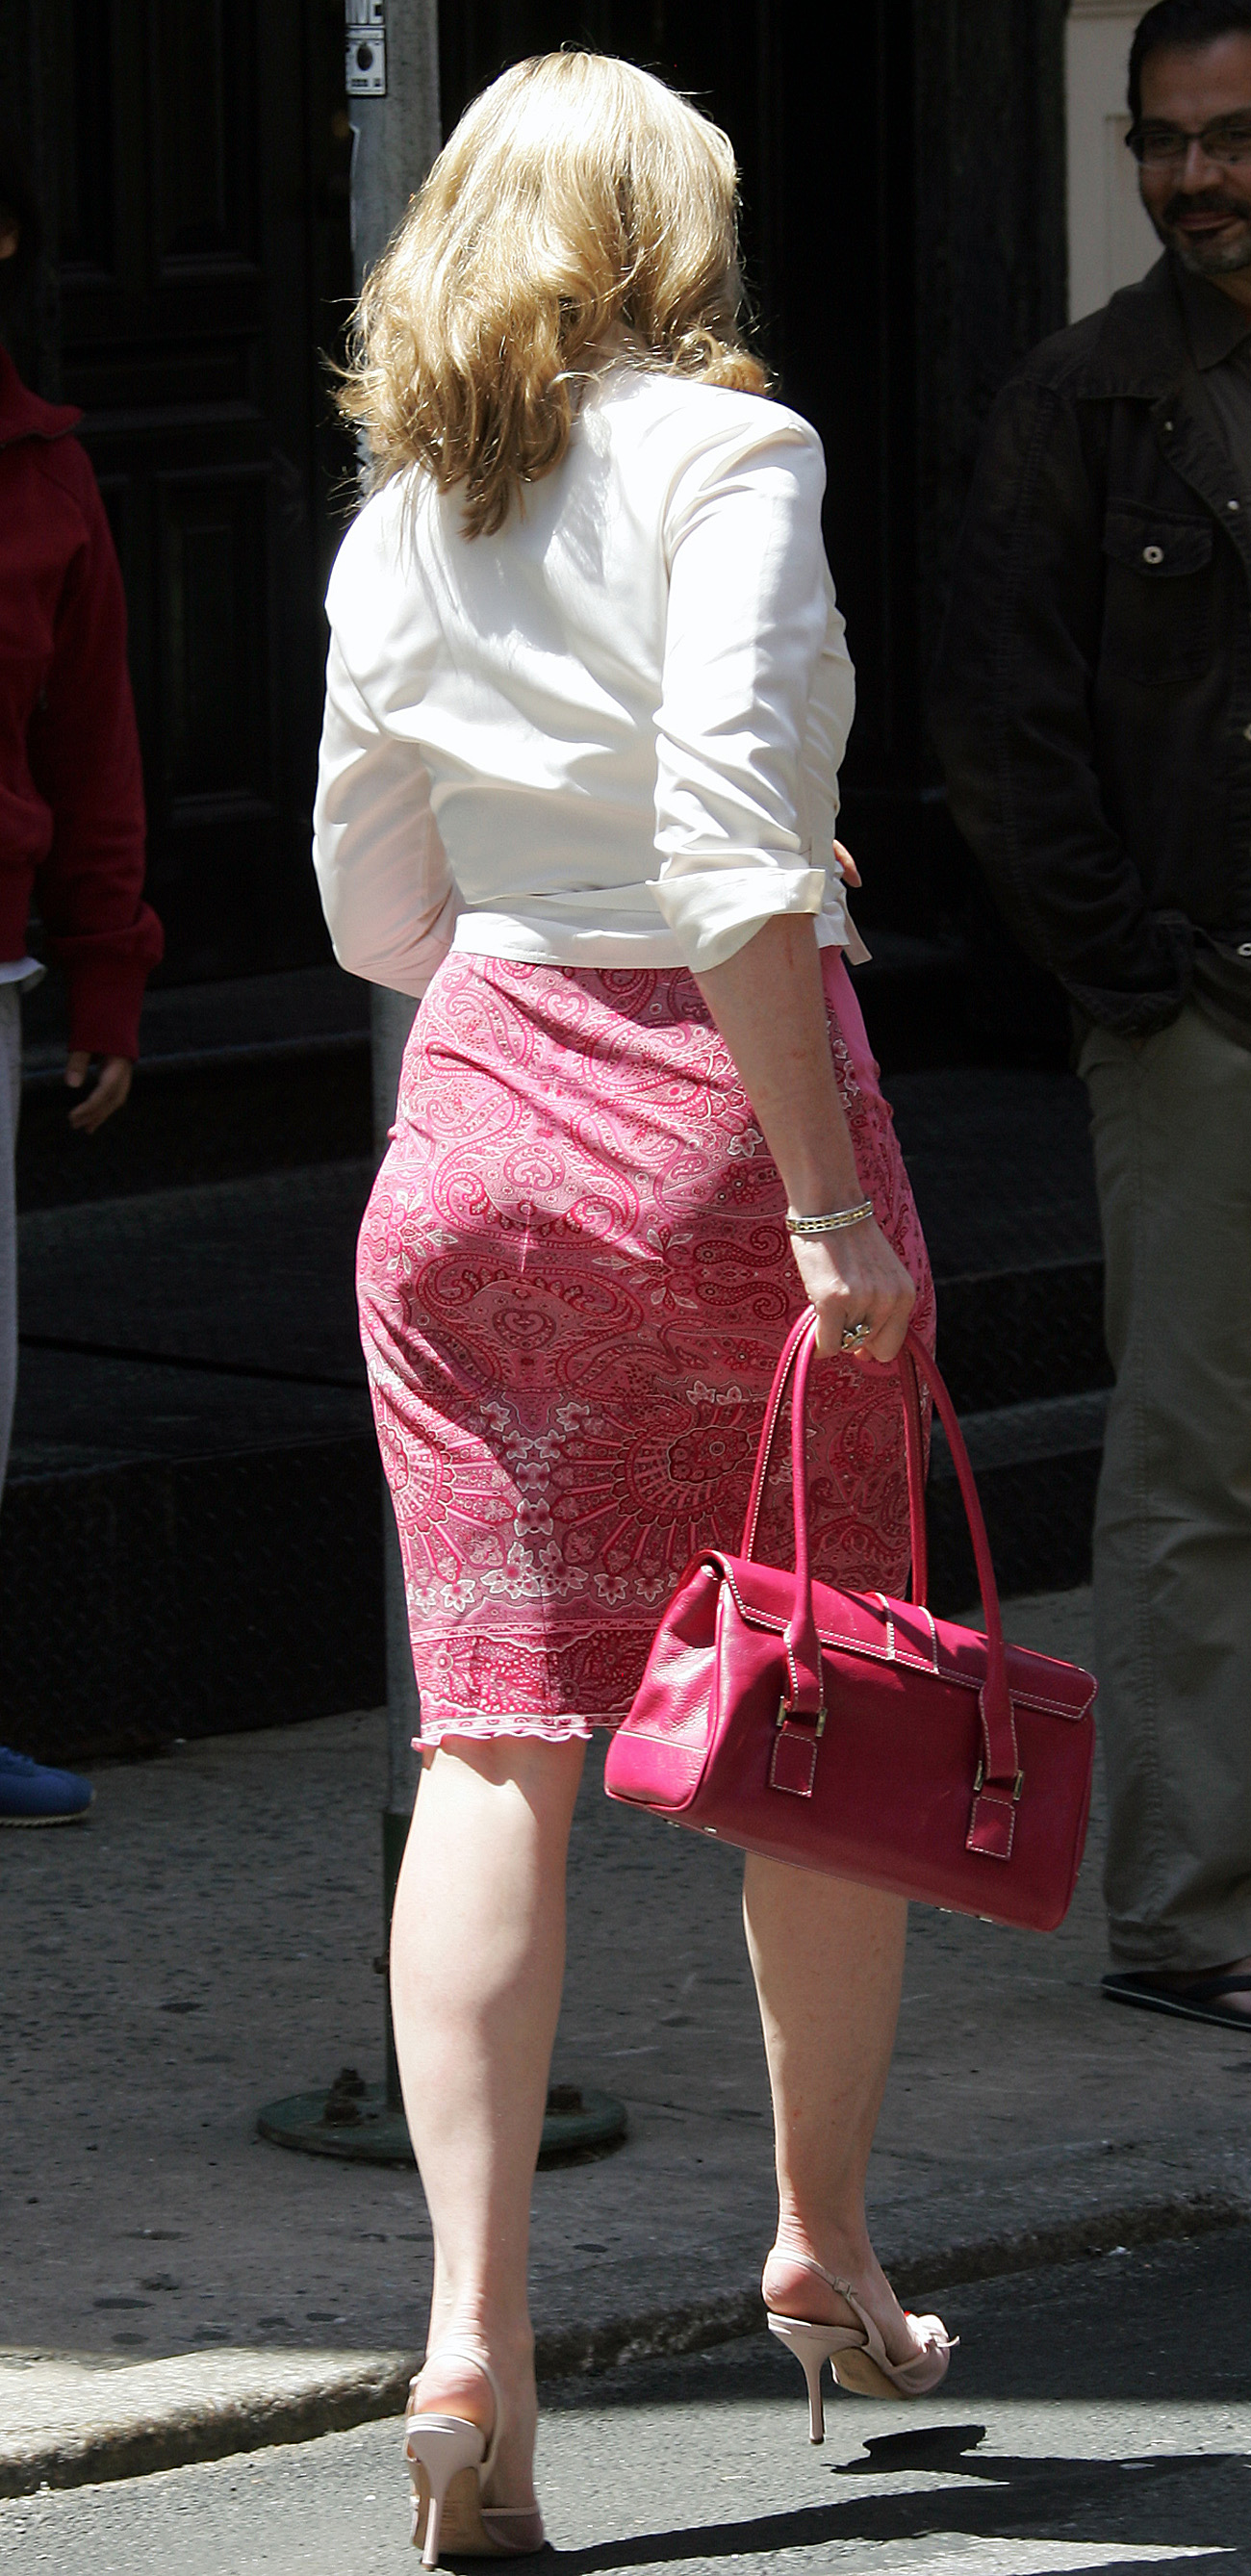 Kim cattrall in sex and the city 2010 - 2 5